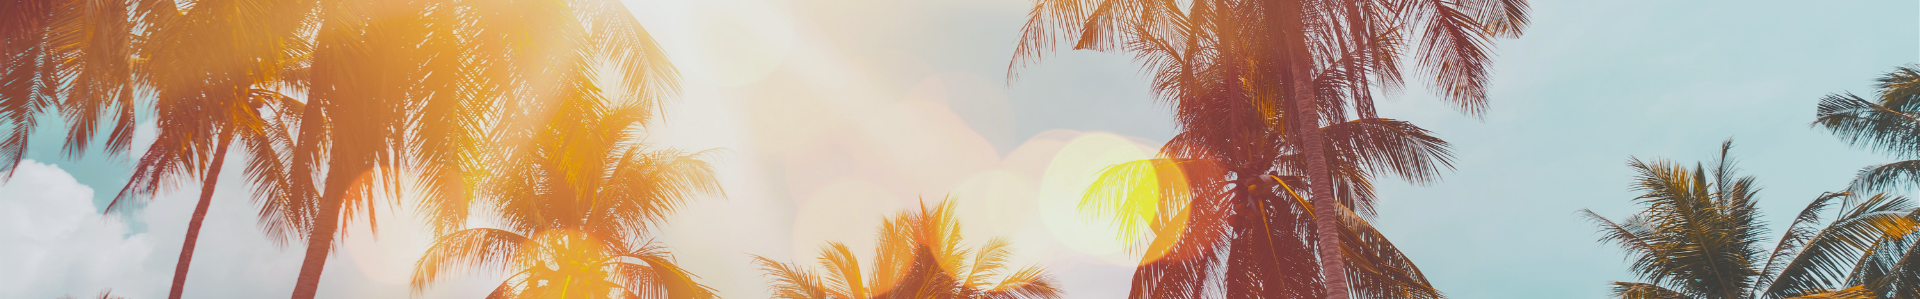 Stock photo of palm trees